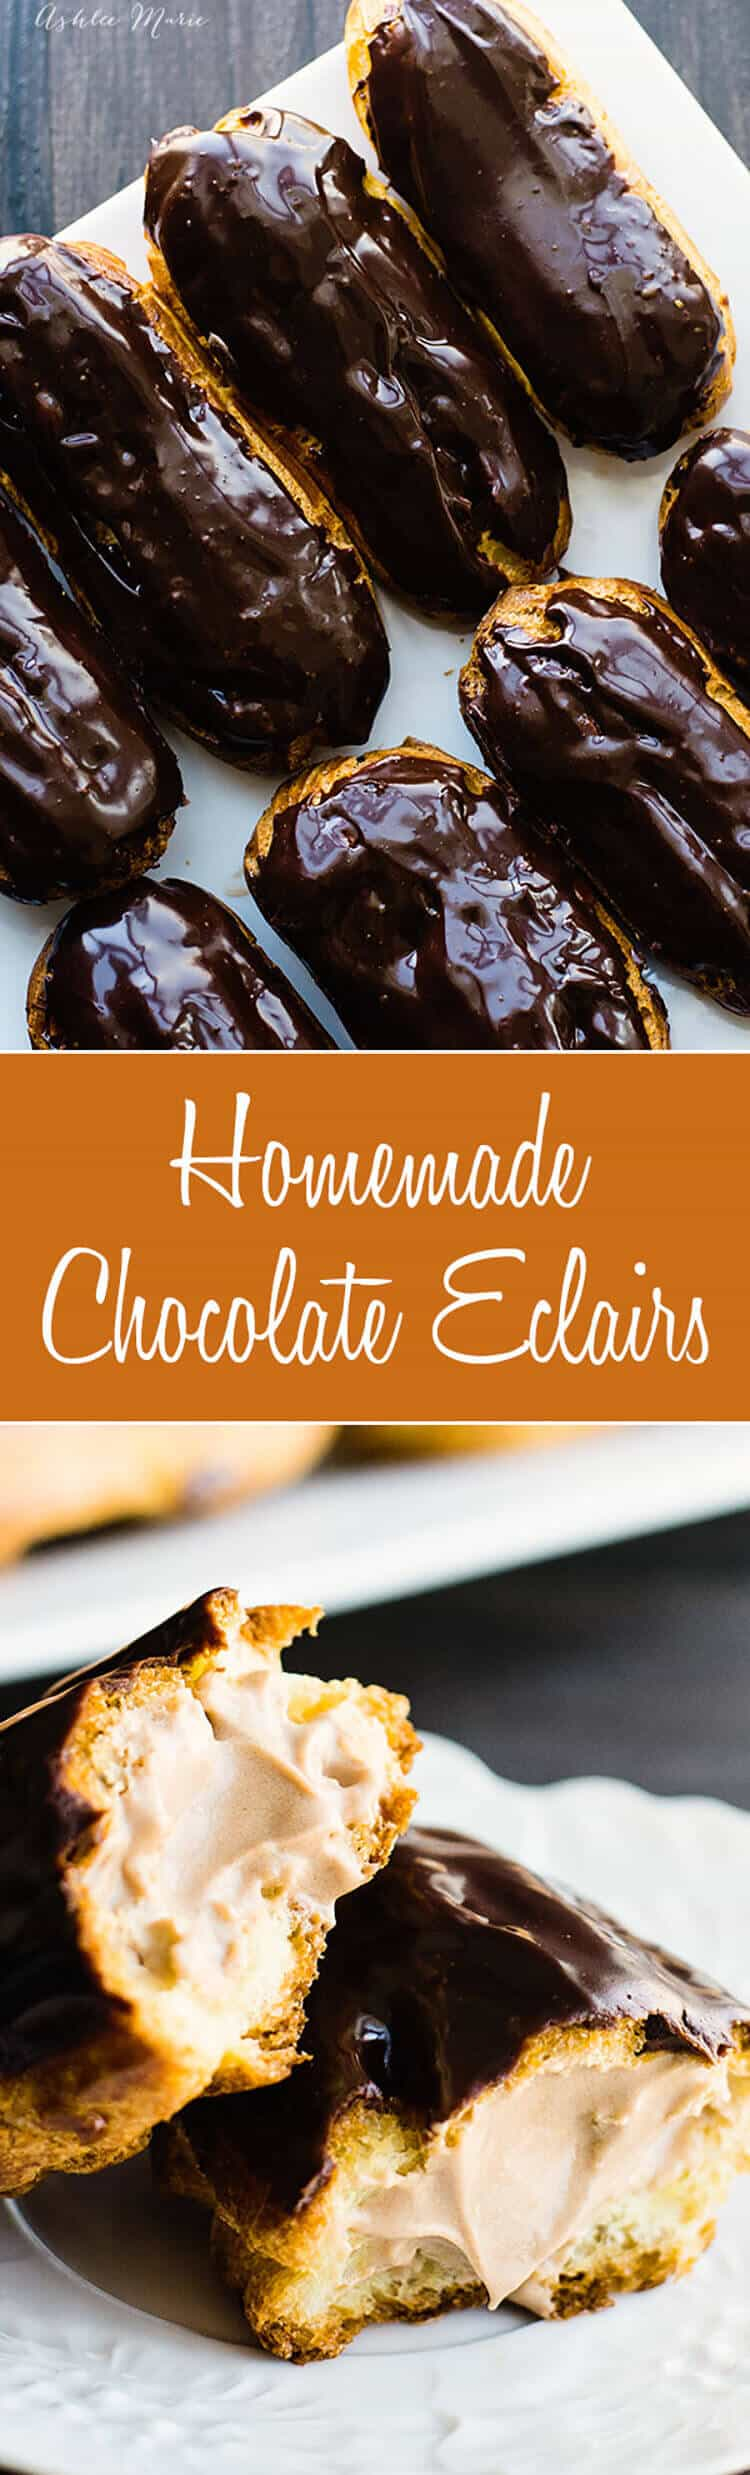 these homemade chocolate eclairs are simply divine - full recipes and video tutorial for the pate a choux dough, chocolate pastry cream filling and ganache glaze